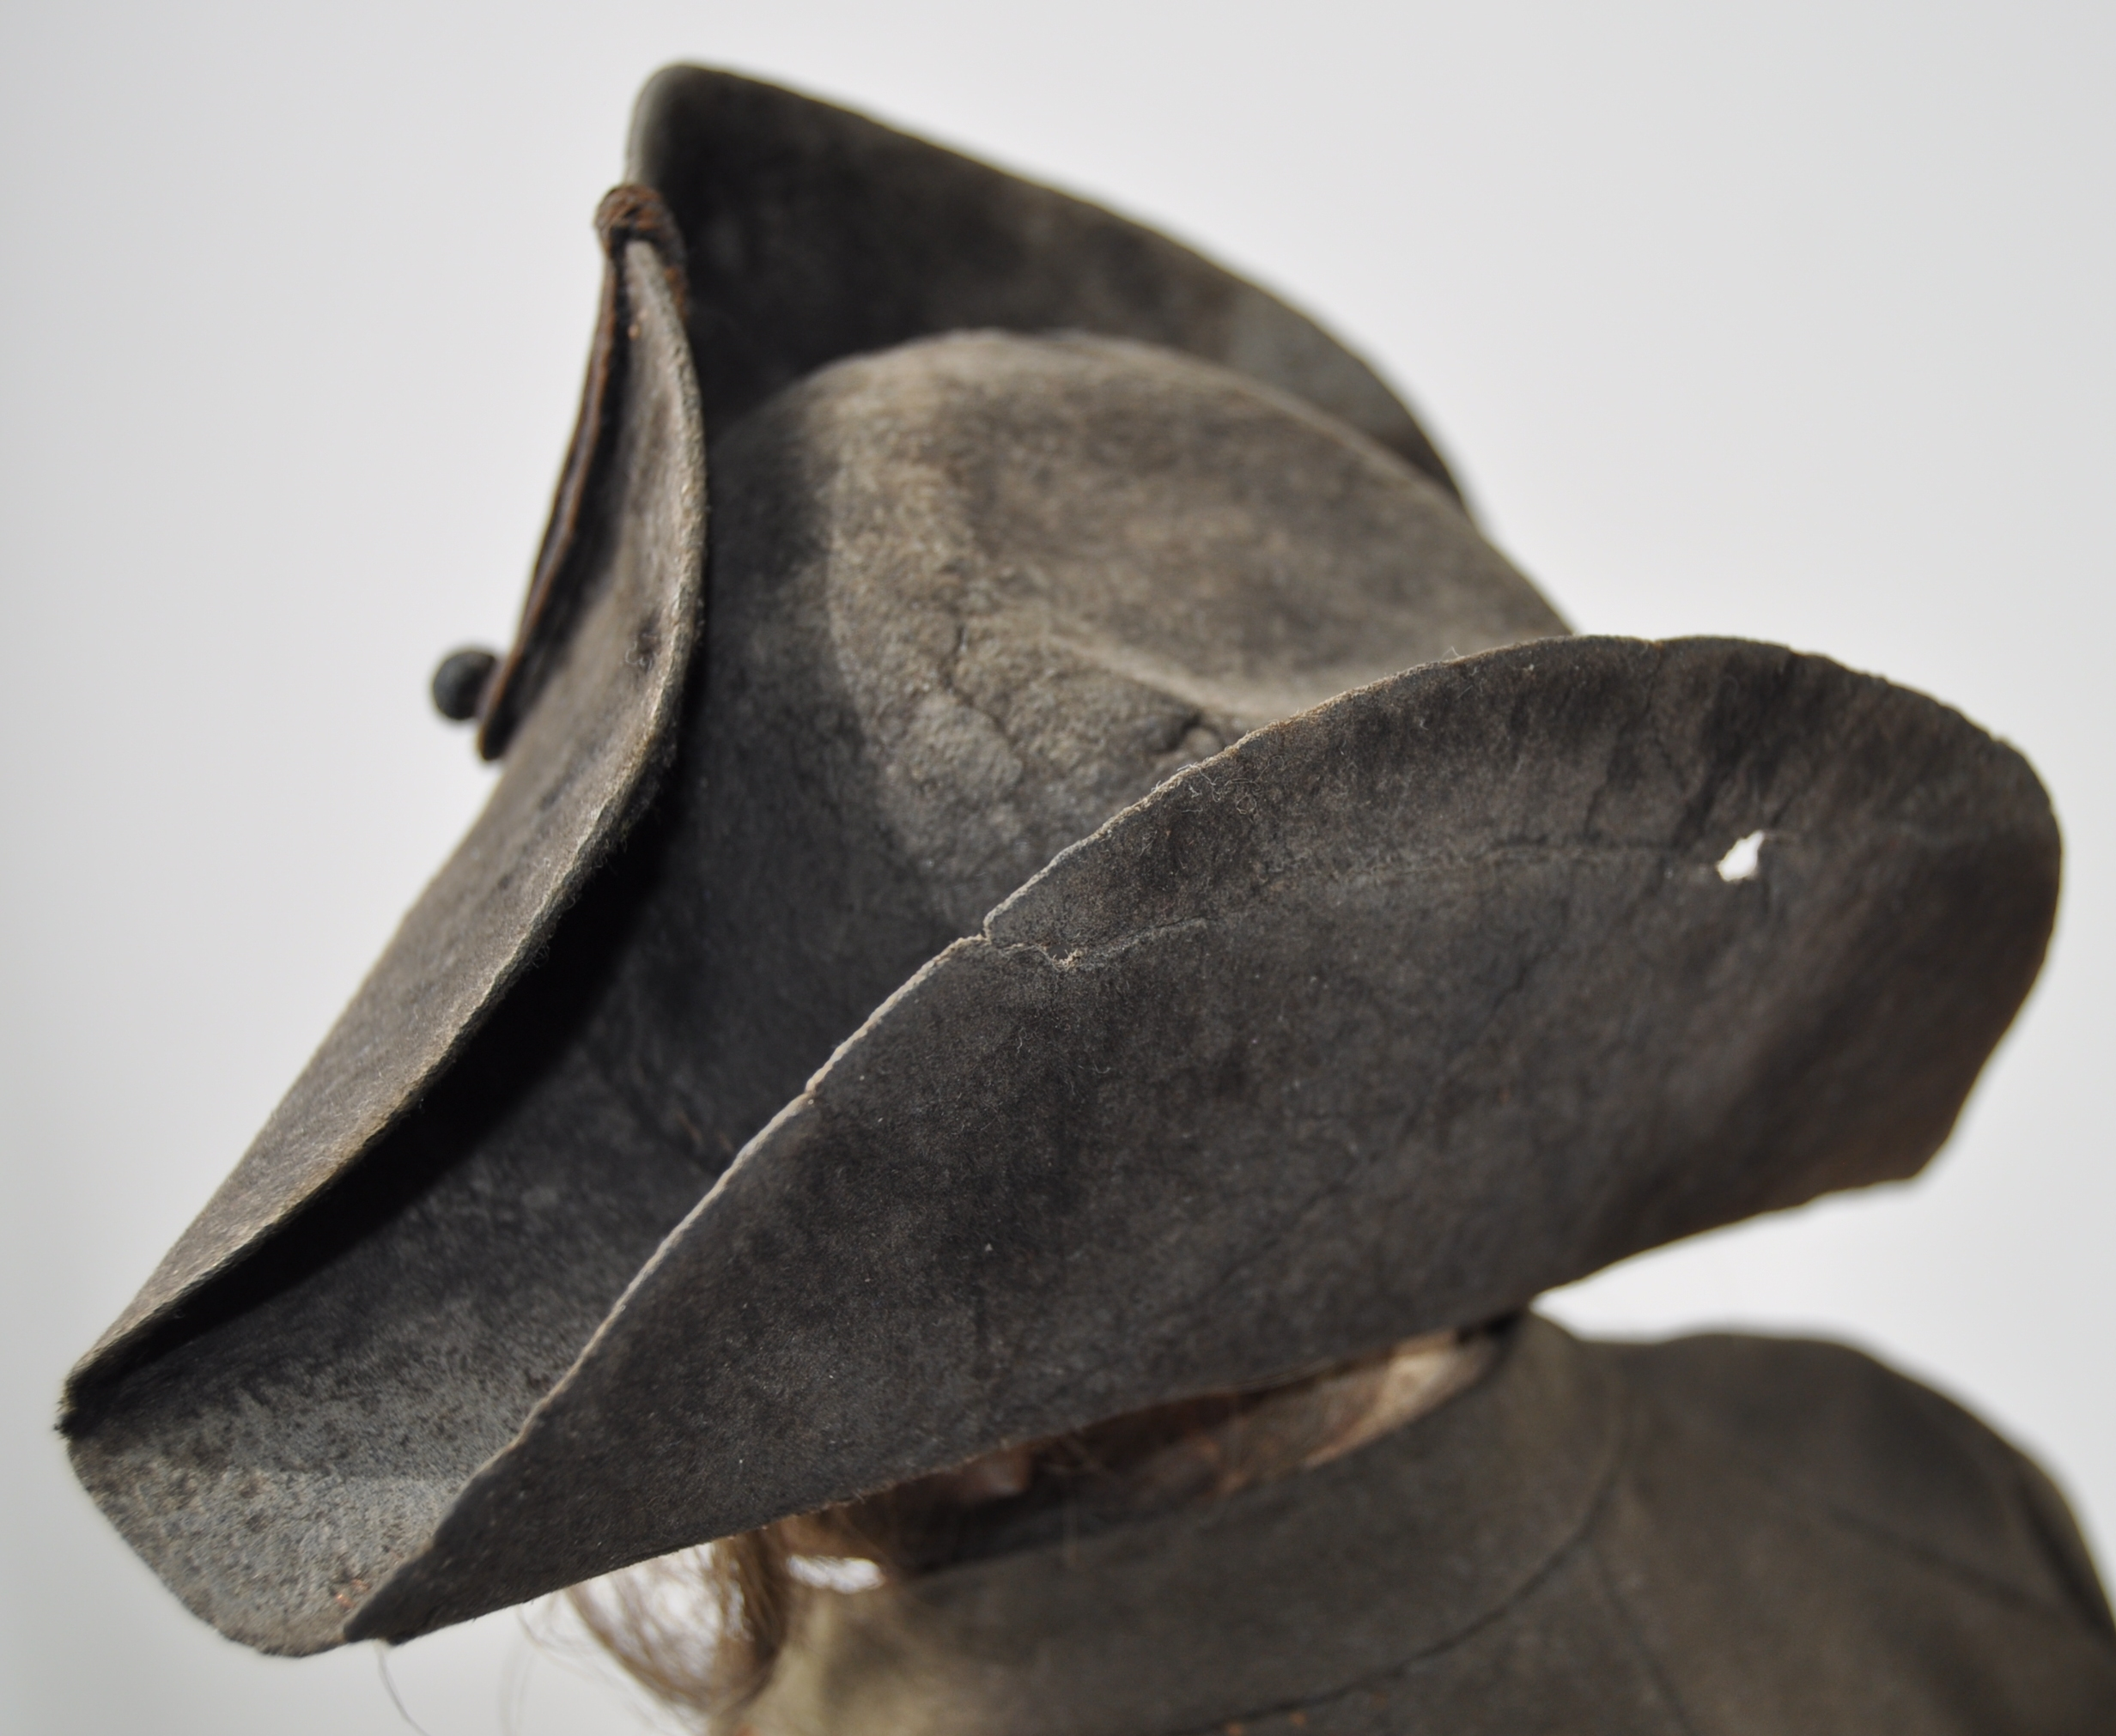 The wool felt bicorn hat, after conservation